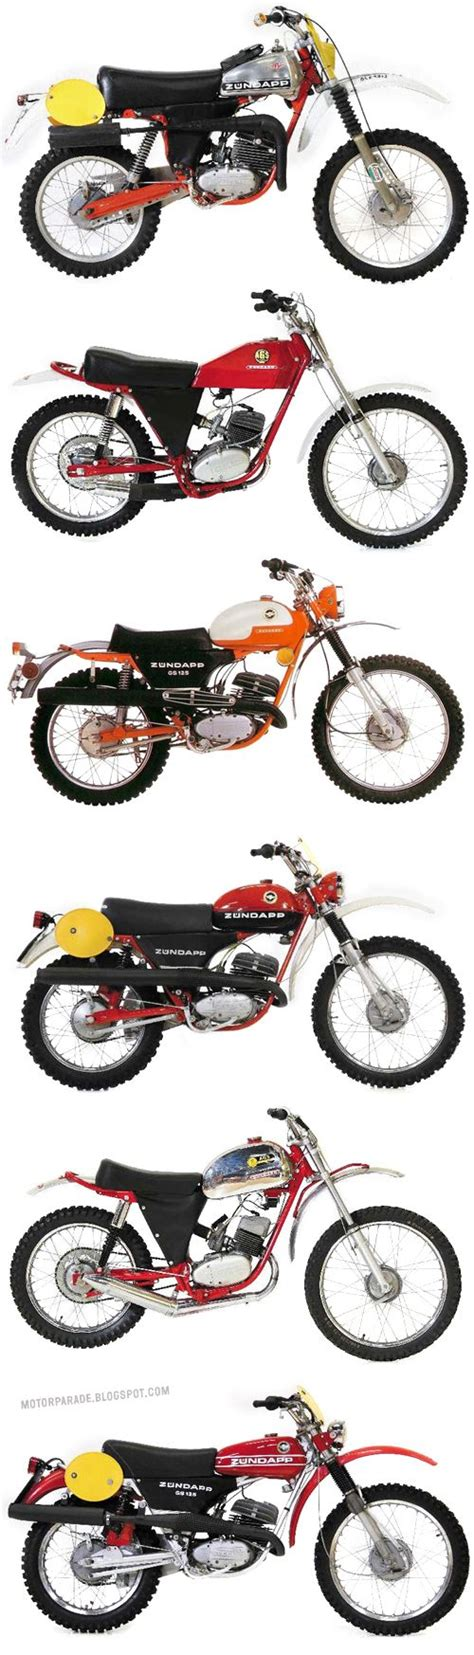 types of motocross bikes best 25 different types of motorcycles ideas on pinterest